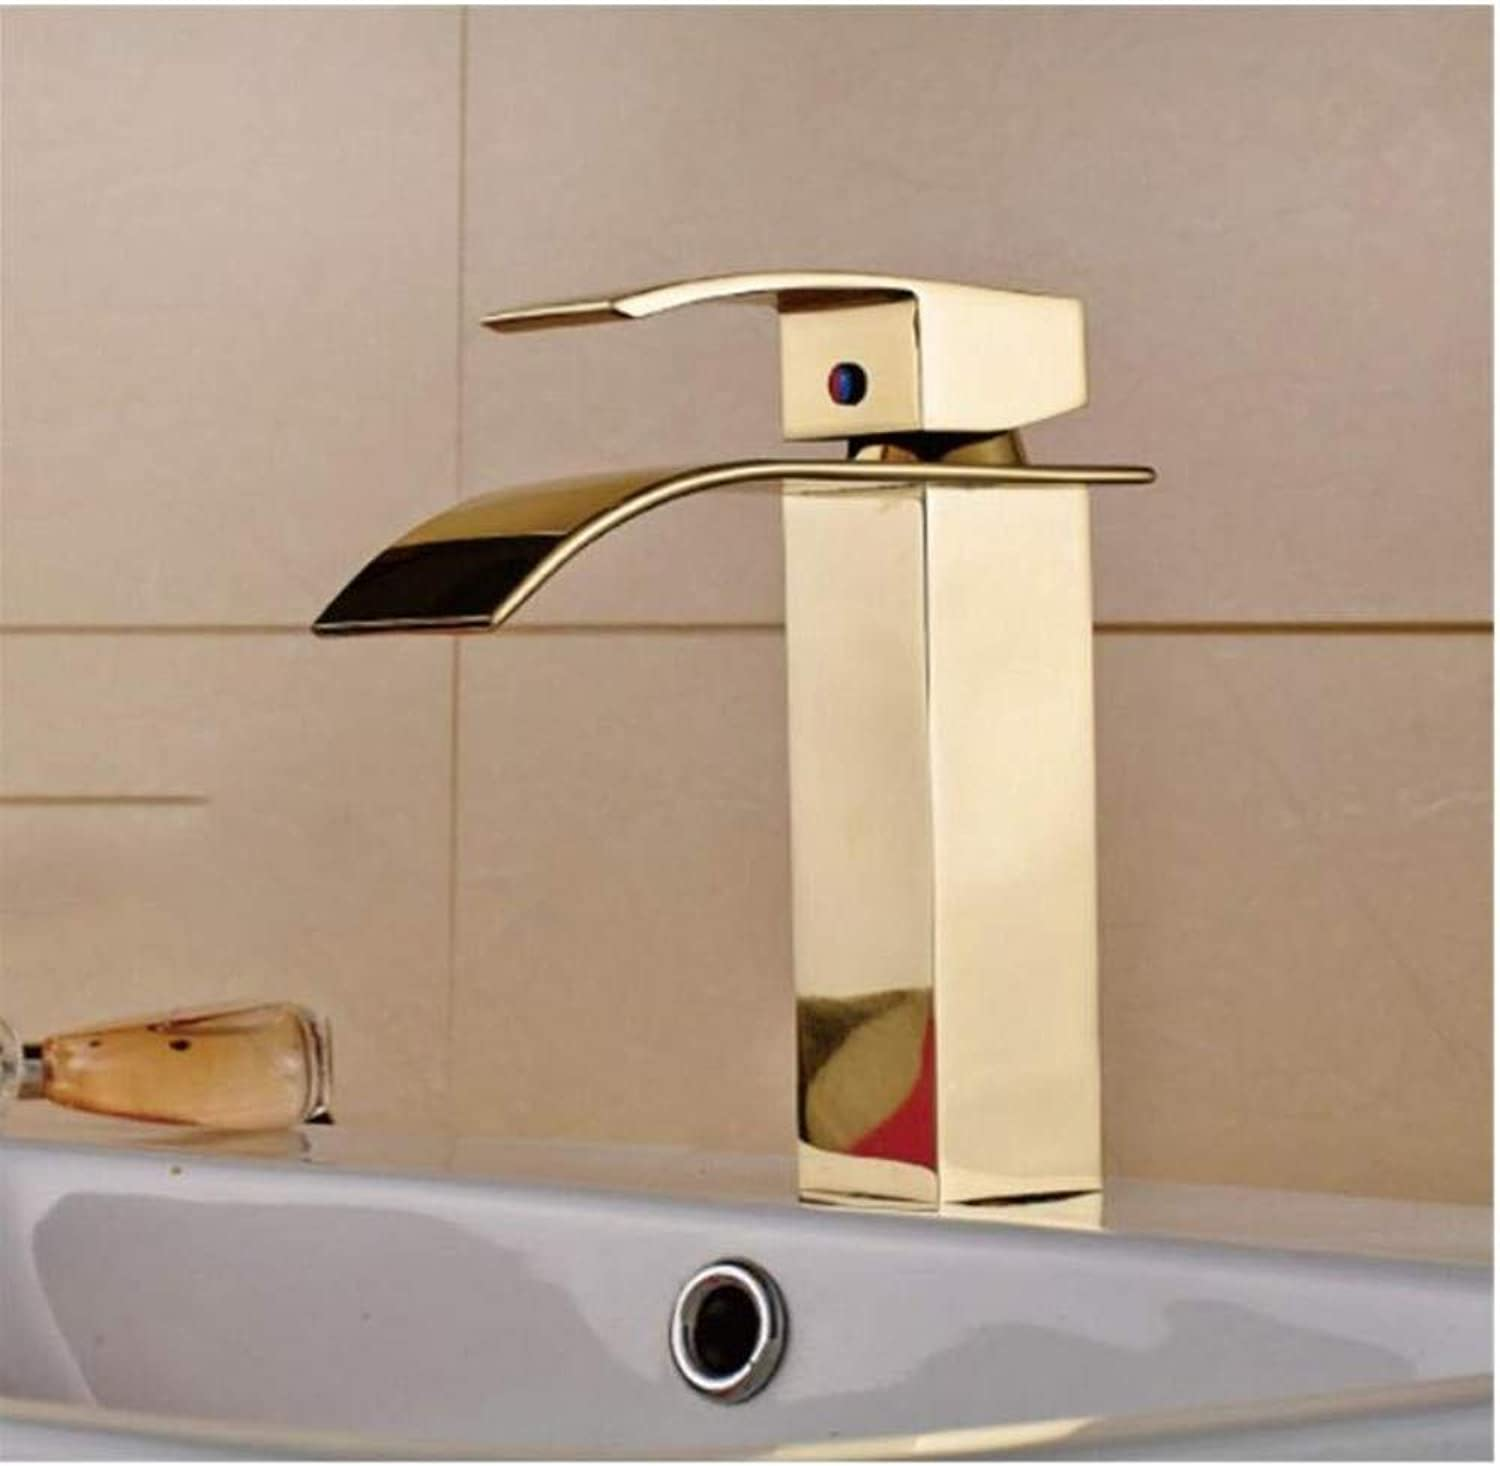 Modern Double Basin Sink Hot and Cold Water Faucet Waterfall Faucet Square Basin Sink Mixer Tap